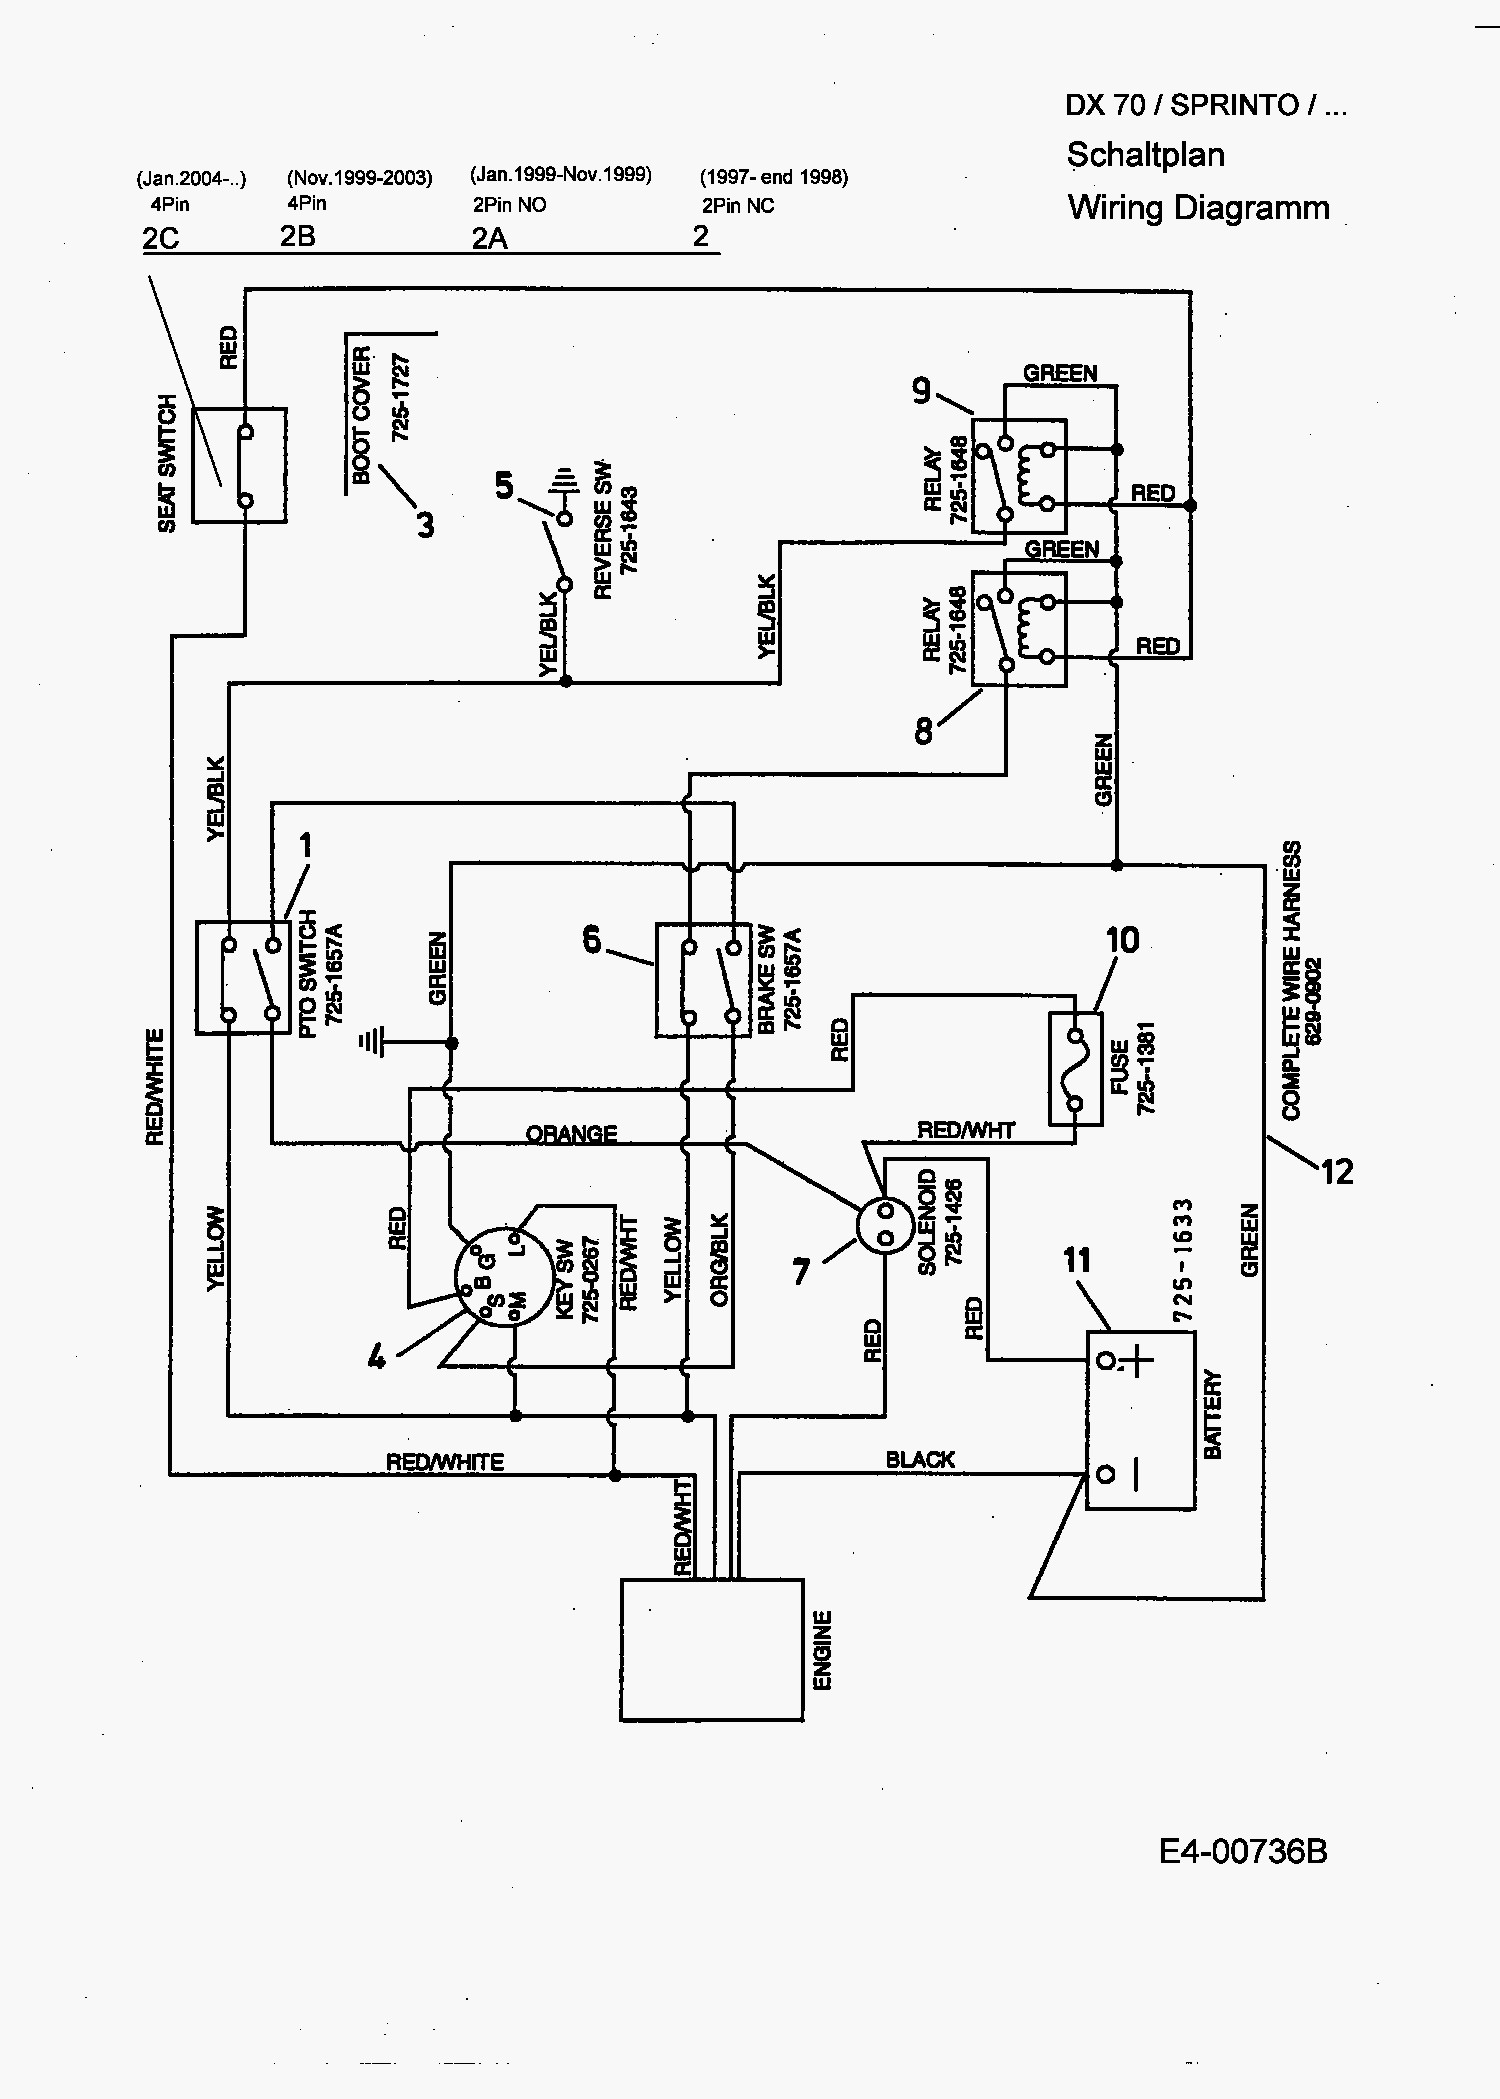 Wiring Diagram for Bad Boy Buggy Wiring Diagram Mtd Lawn Tractor Wiring Diagram and by Wiring Of Wiring Diagram for Bad Boy Buggy